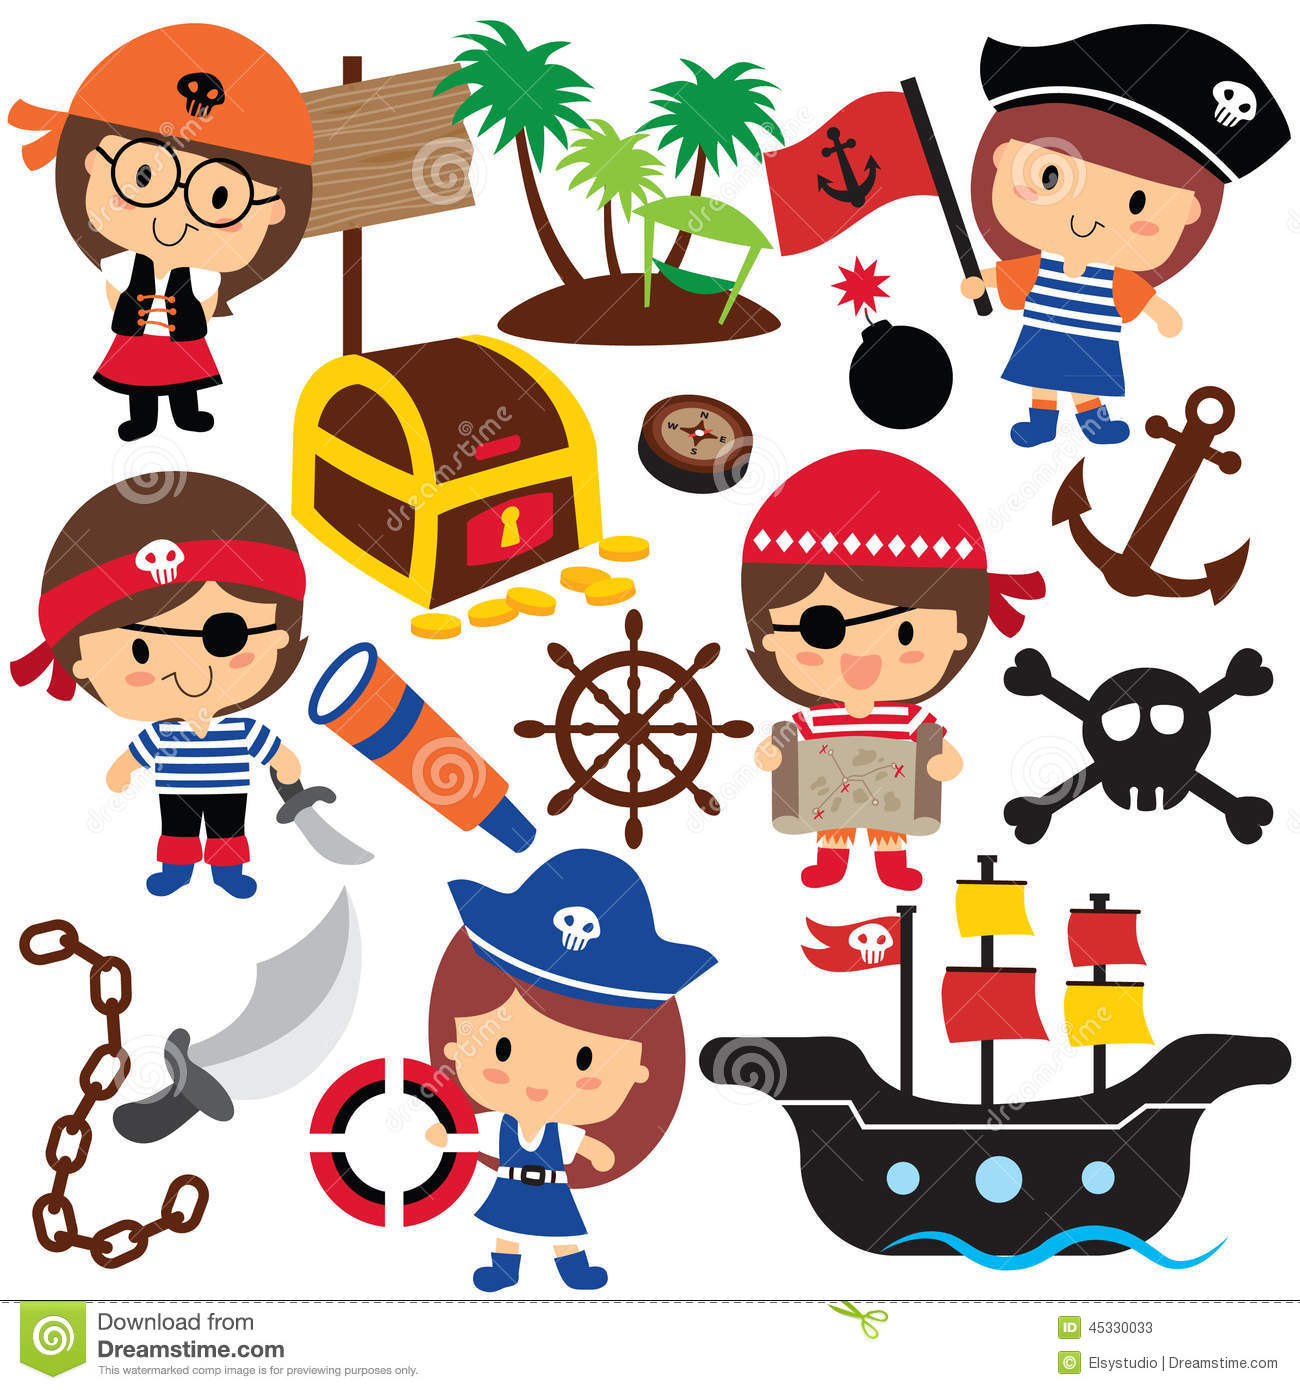 390 Pirates free clipart.